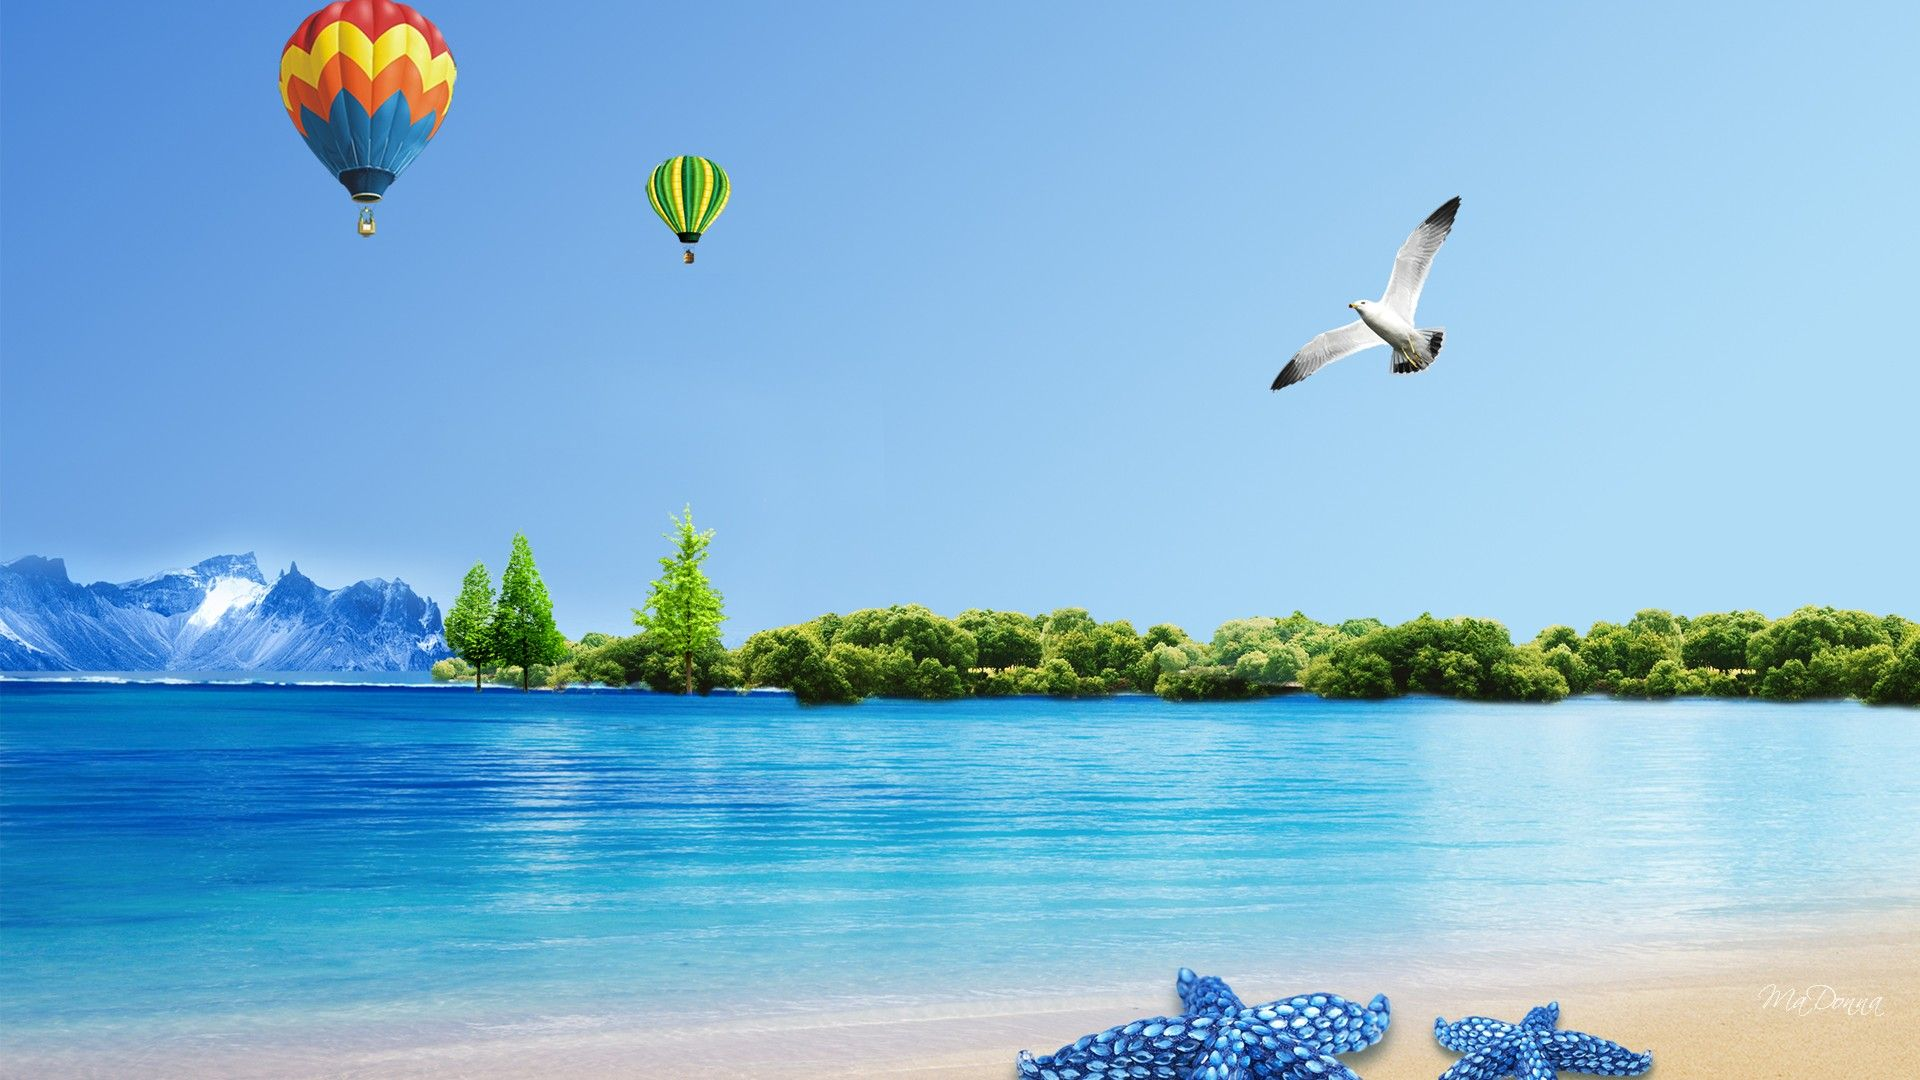 Summer Backgrounds Wallpaper | Water | Pinterest | Summer ...